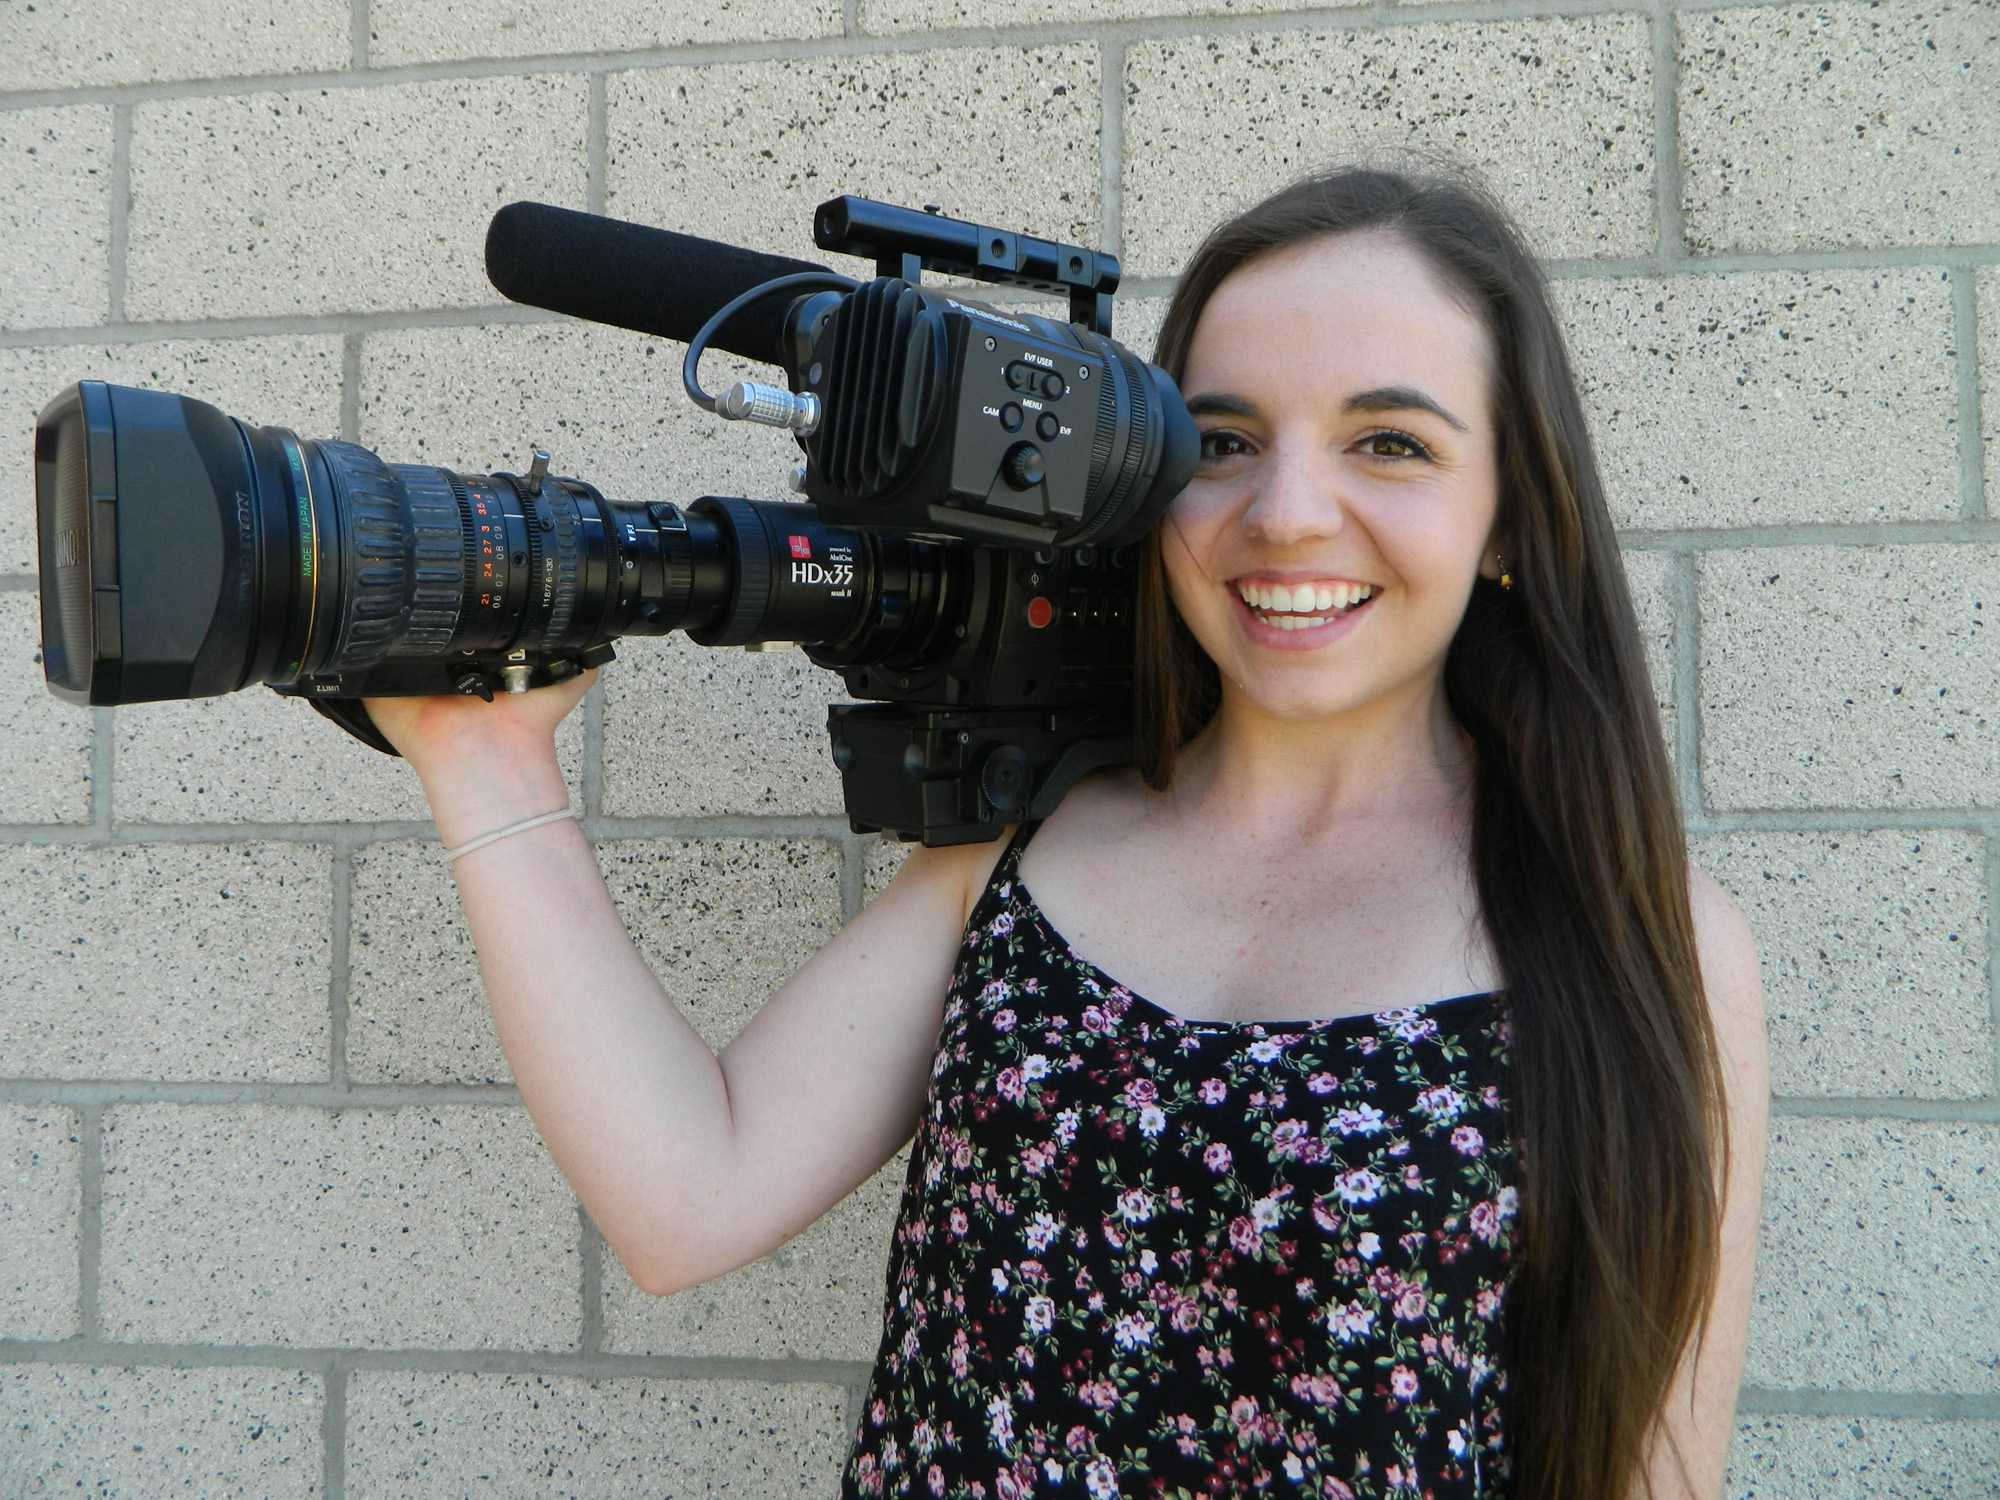 Senior Claire Imler is an aspiring filmmaker who like to capture moment of people's lives.